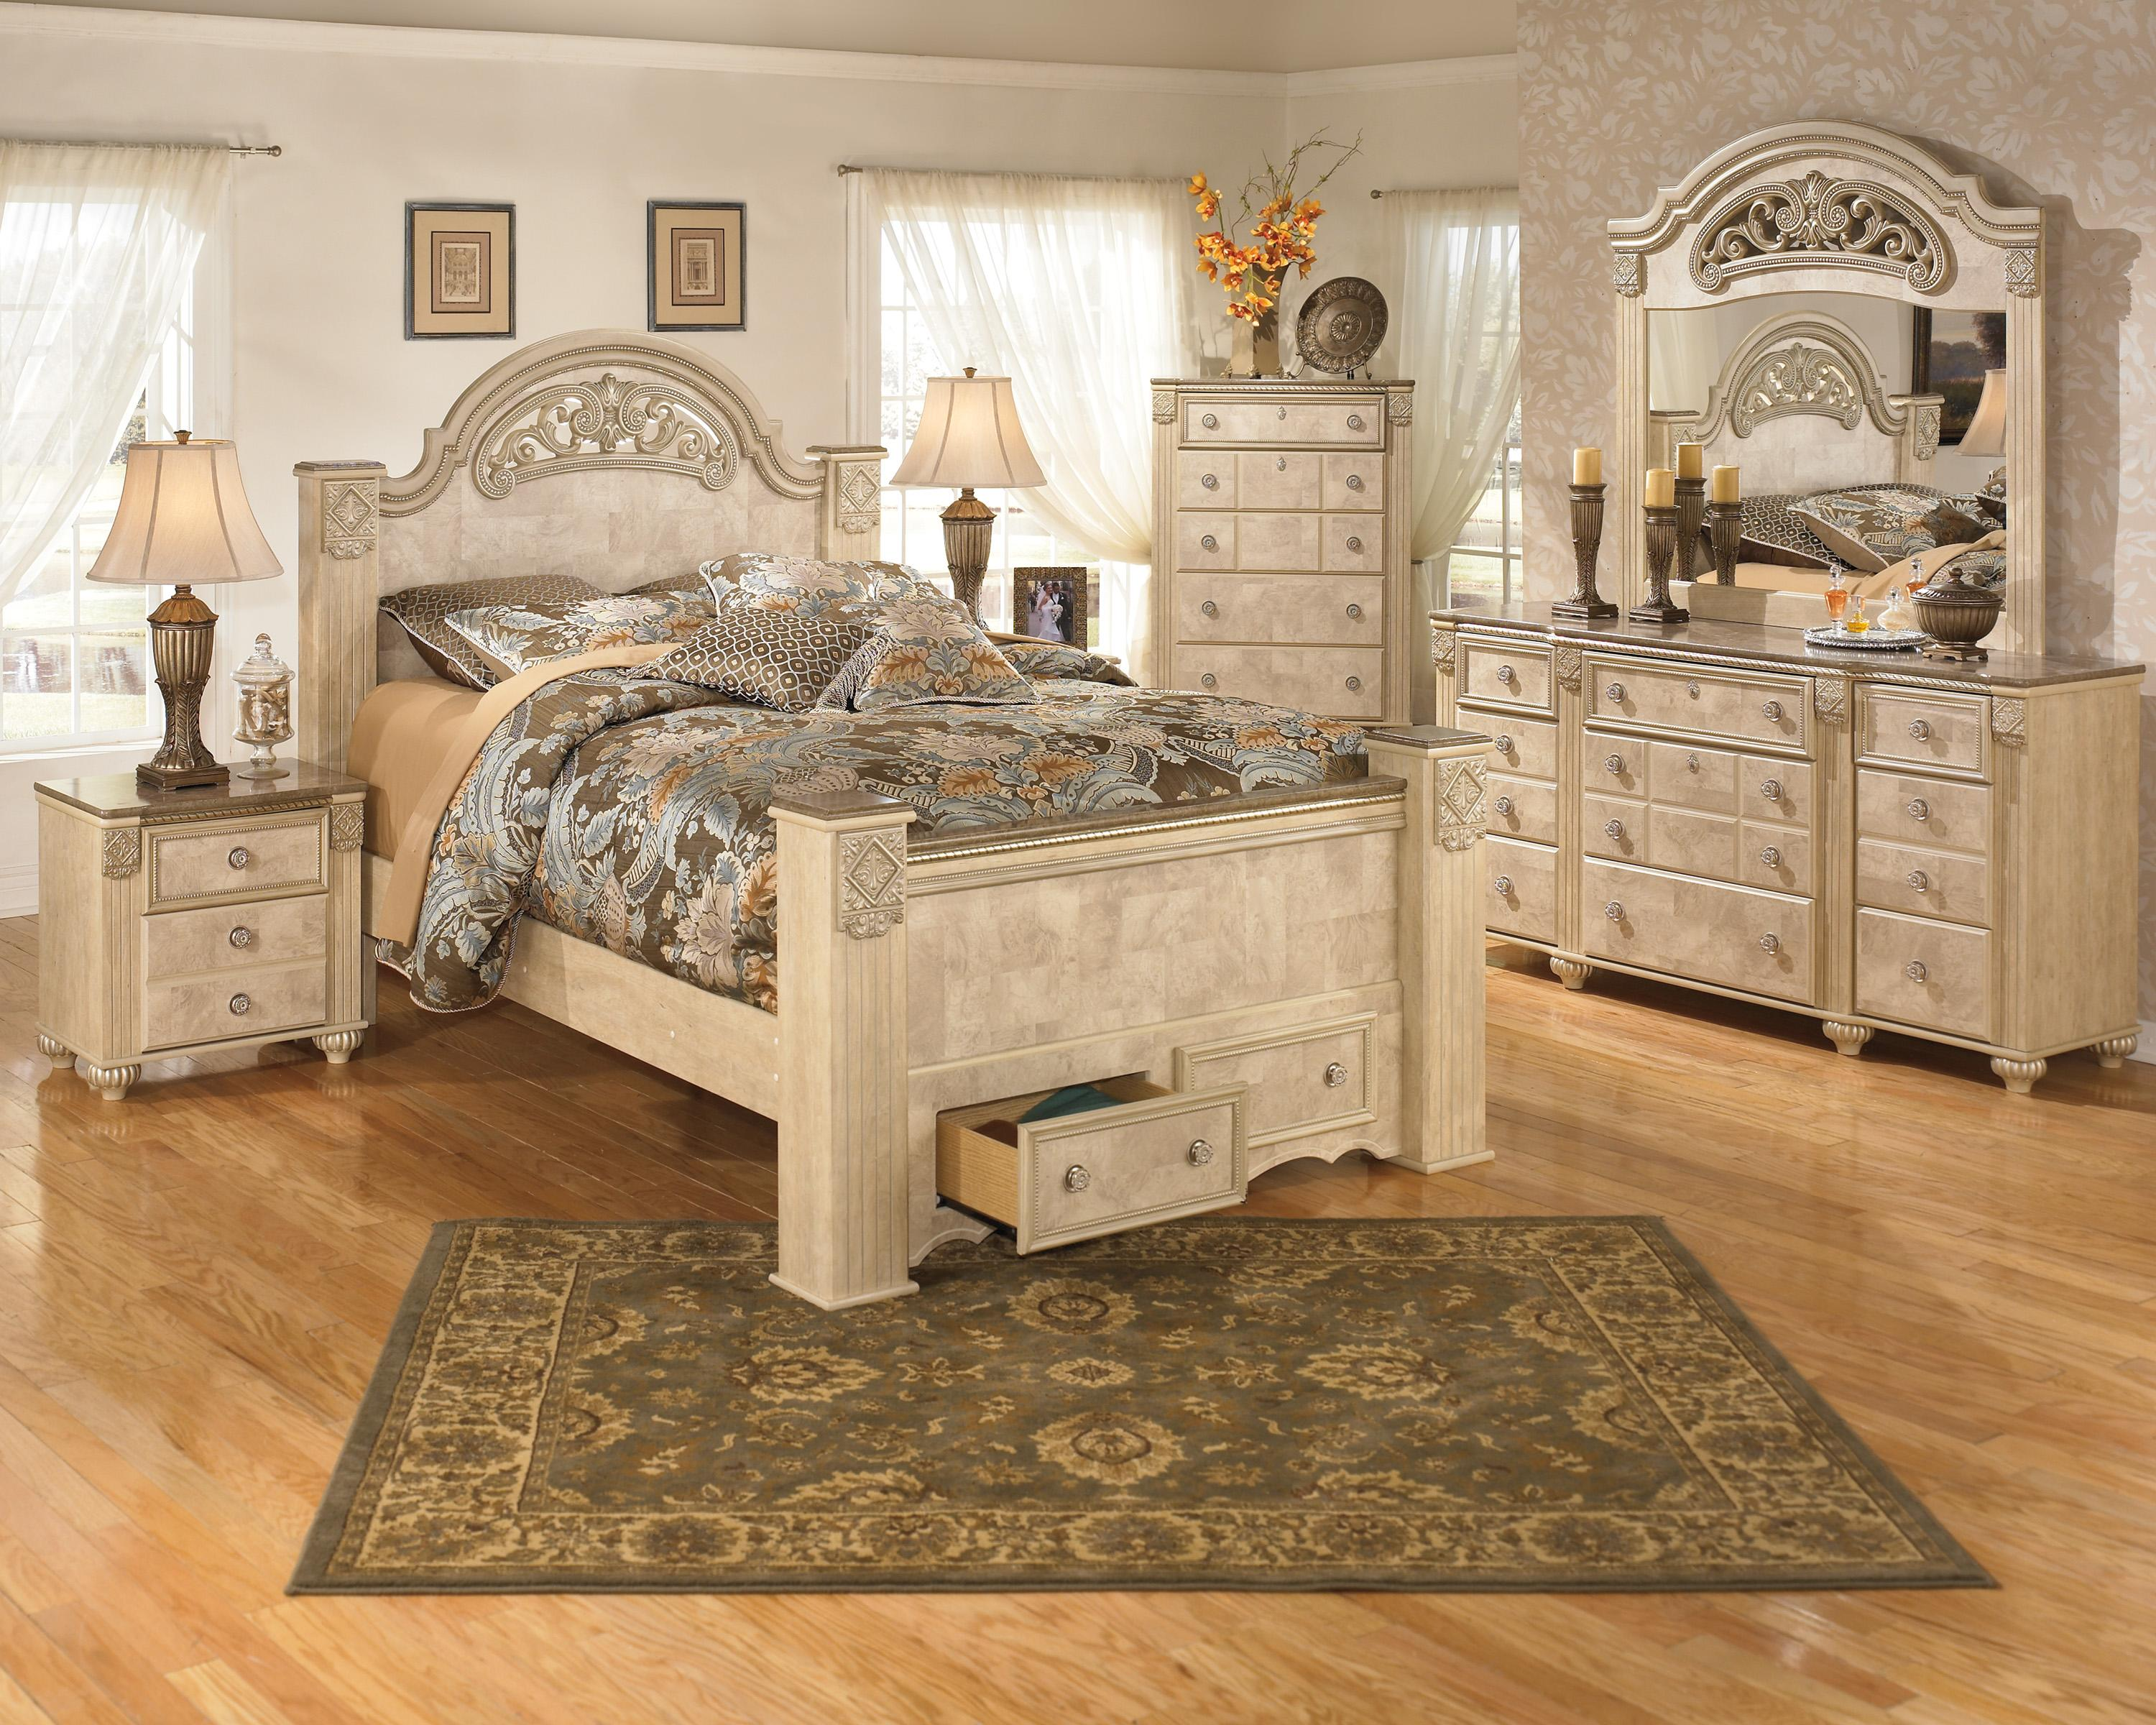 Signature Design by Ashley Saveaha King Bedroom Group - Item Number: B346 K Bedroom Group 2